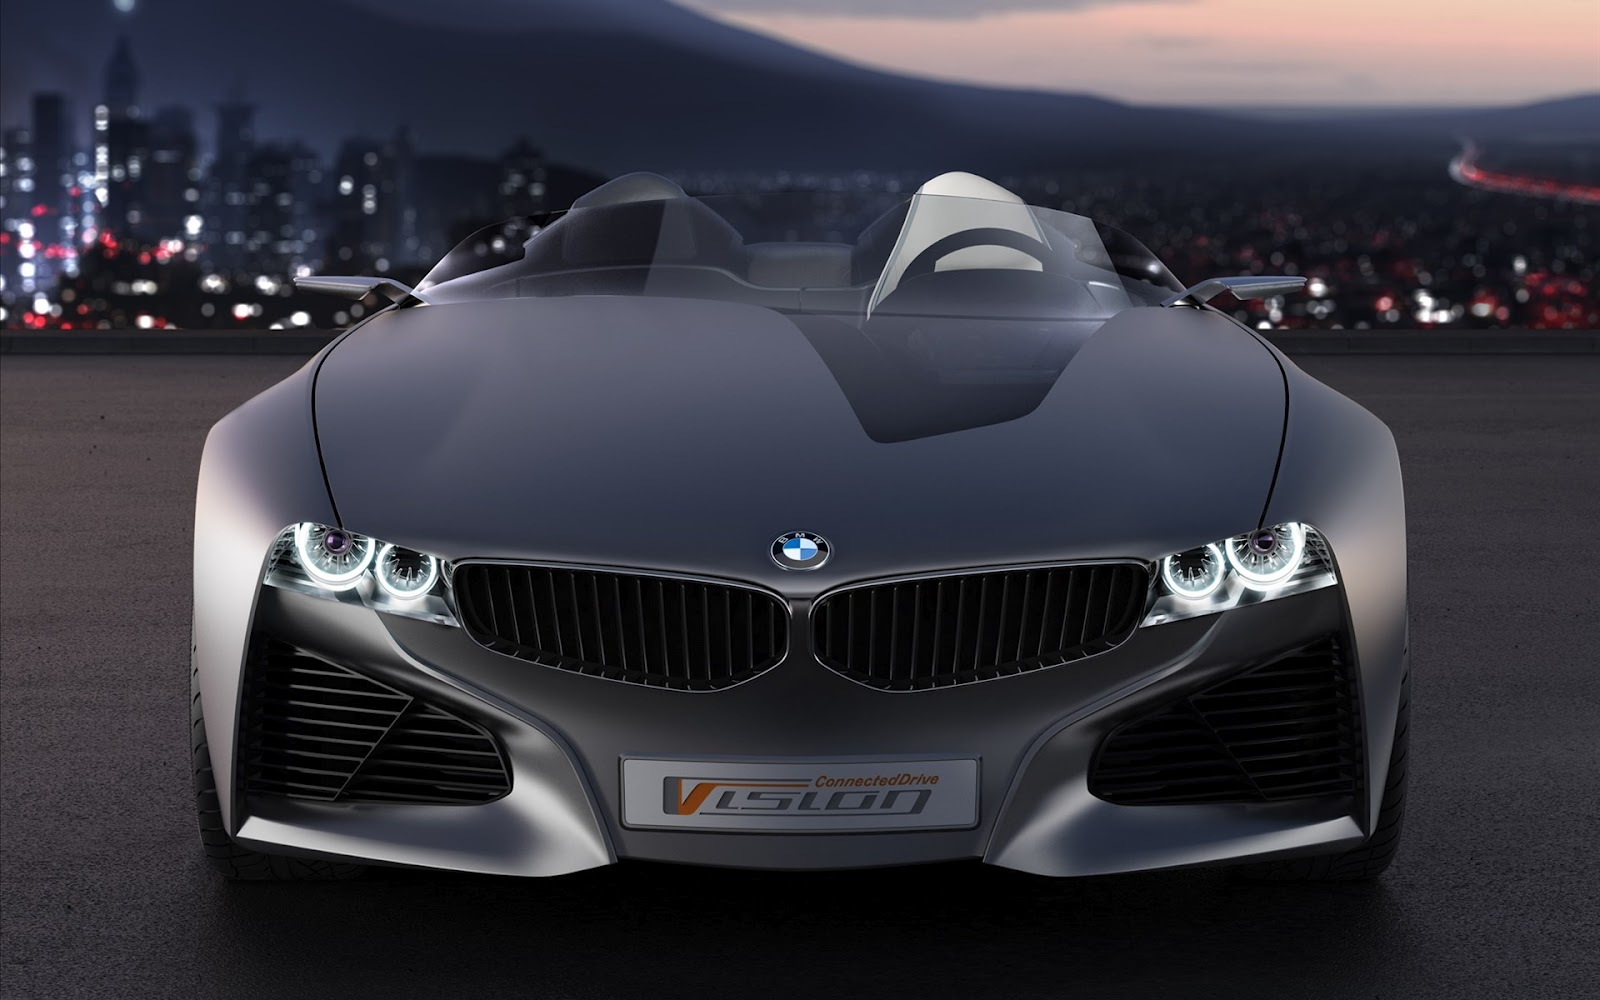 Bmw car wallpaper hd bmw car wallpaper hd bmw car